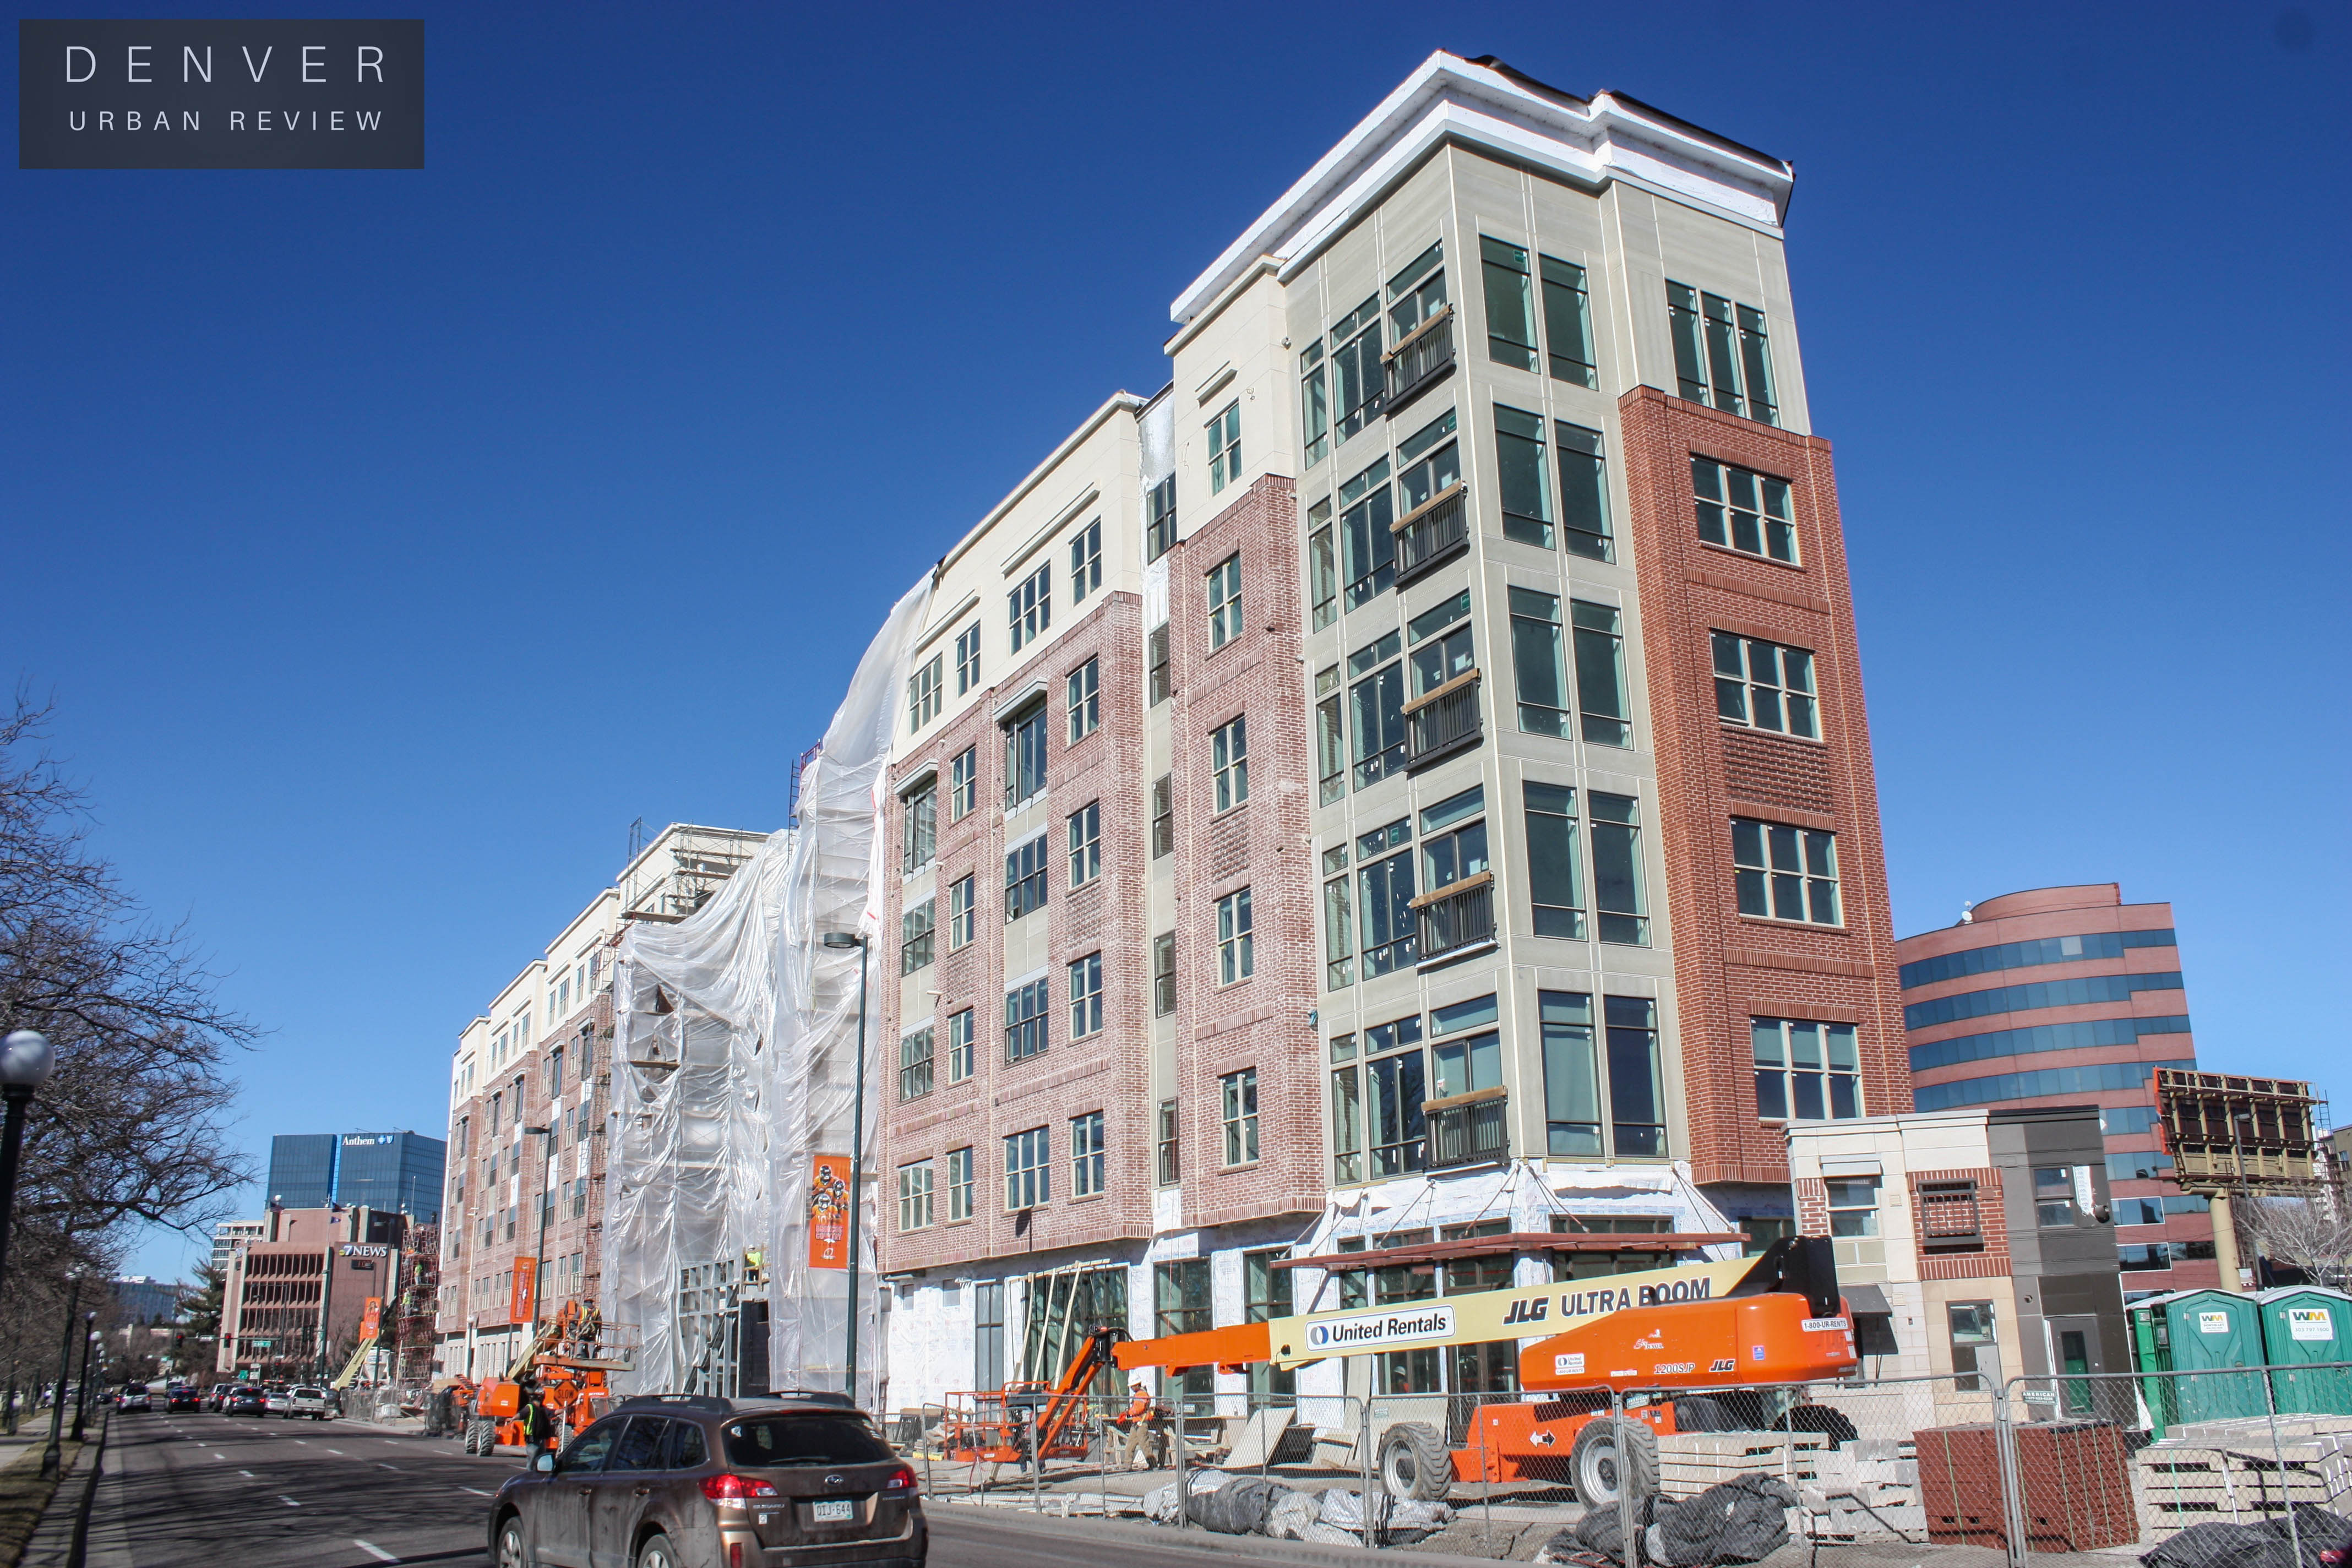 Denver construction update February Denver Urban Review